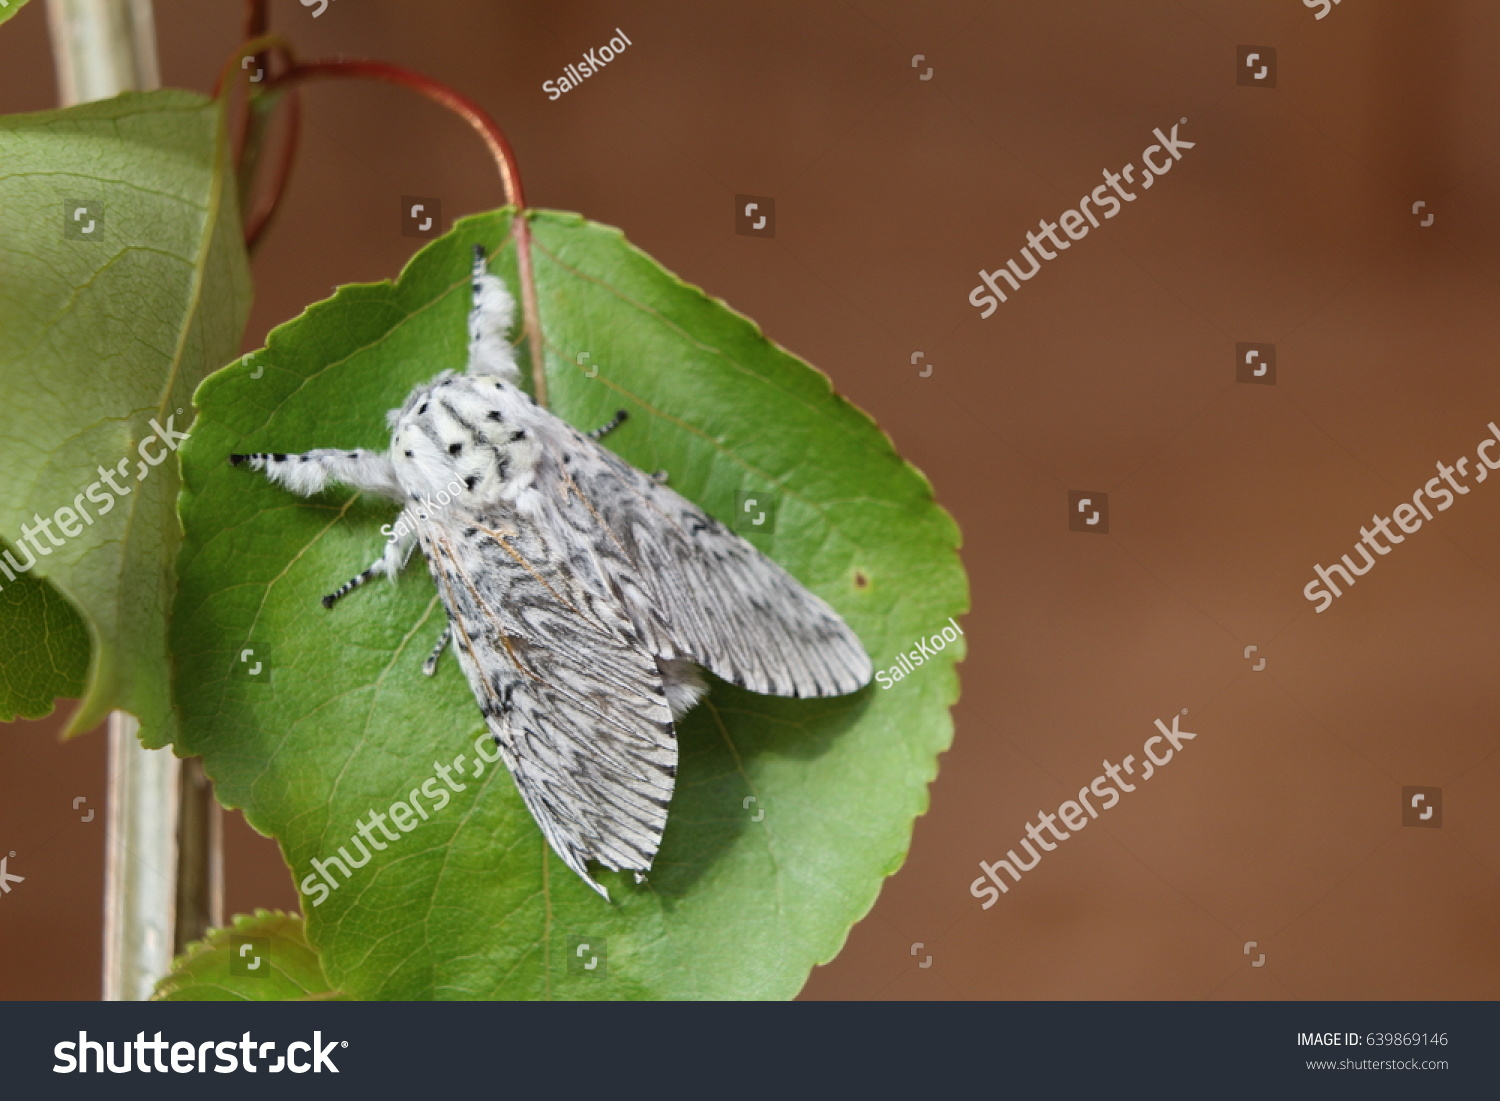 Puss moth, large white moth with dark markings, on Poplar leaf. #639869146